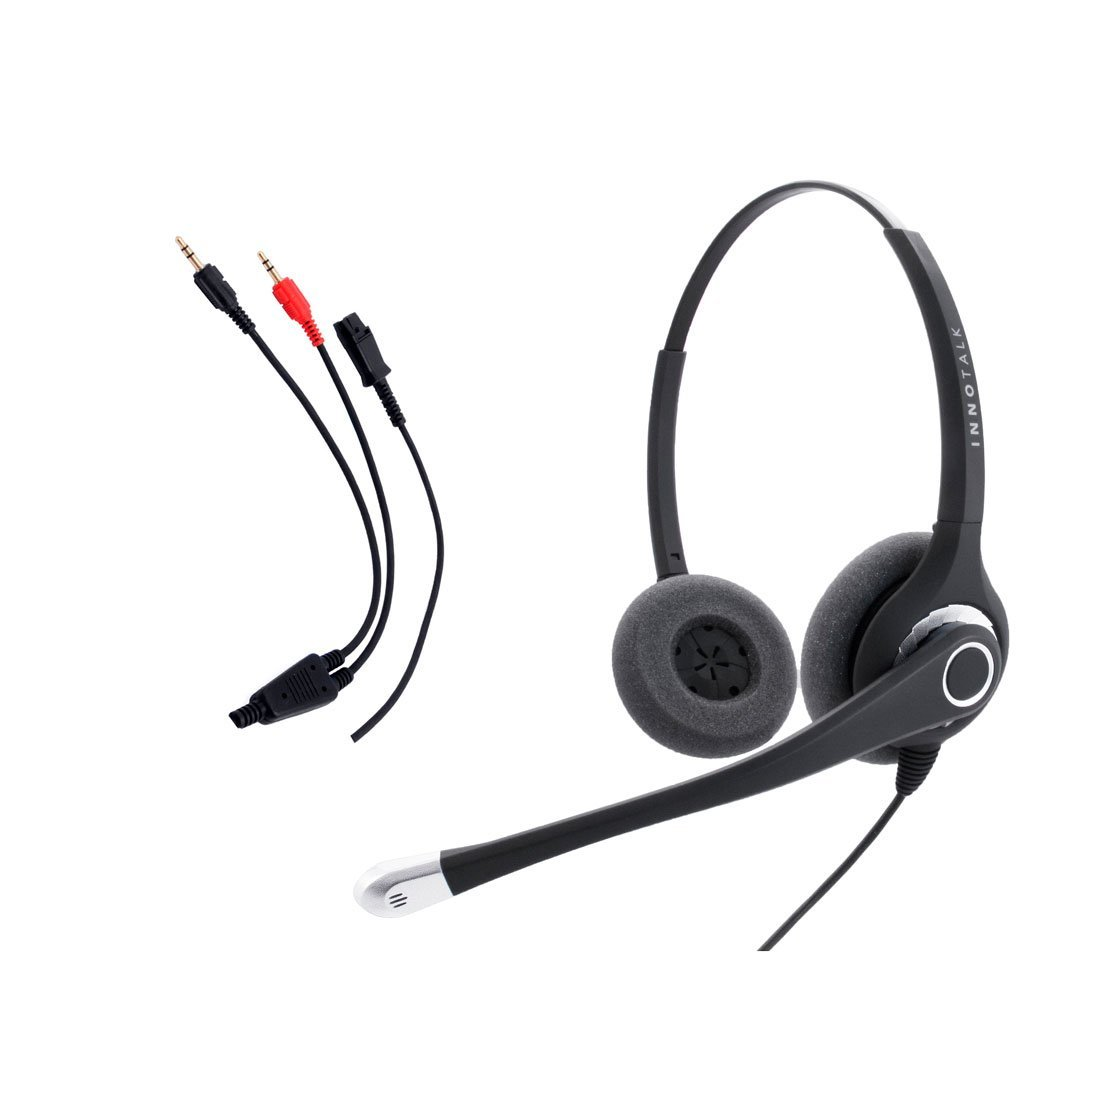 Cheap Install Sound Card Pc Find Deals On Usb Soundcard Steel 5hv2 Virtual 71 Surround Get Quotations Analog Headset Fit To In Computer Forced Phone